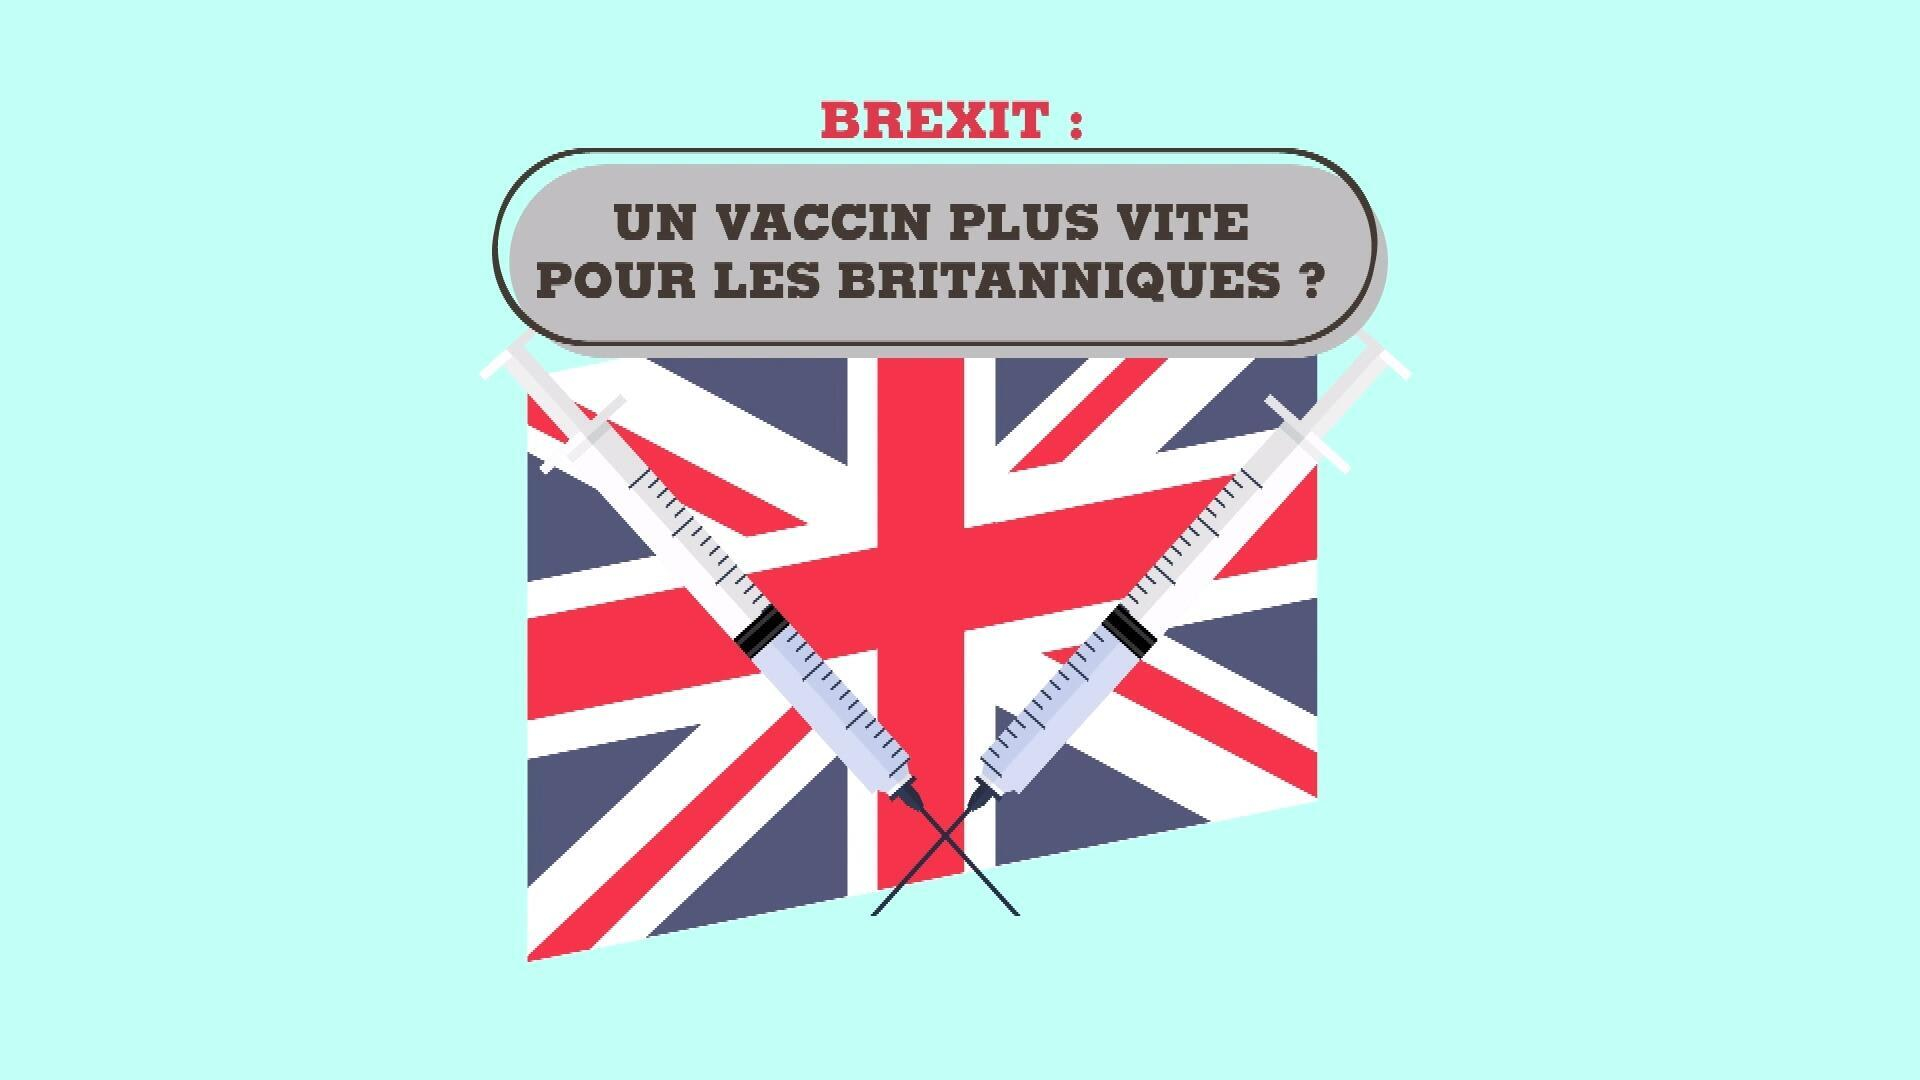 2021-07-15 13:03 FR WB ICI L EUROPE FAKE NEWS VACCIN BREXIT